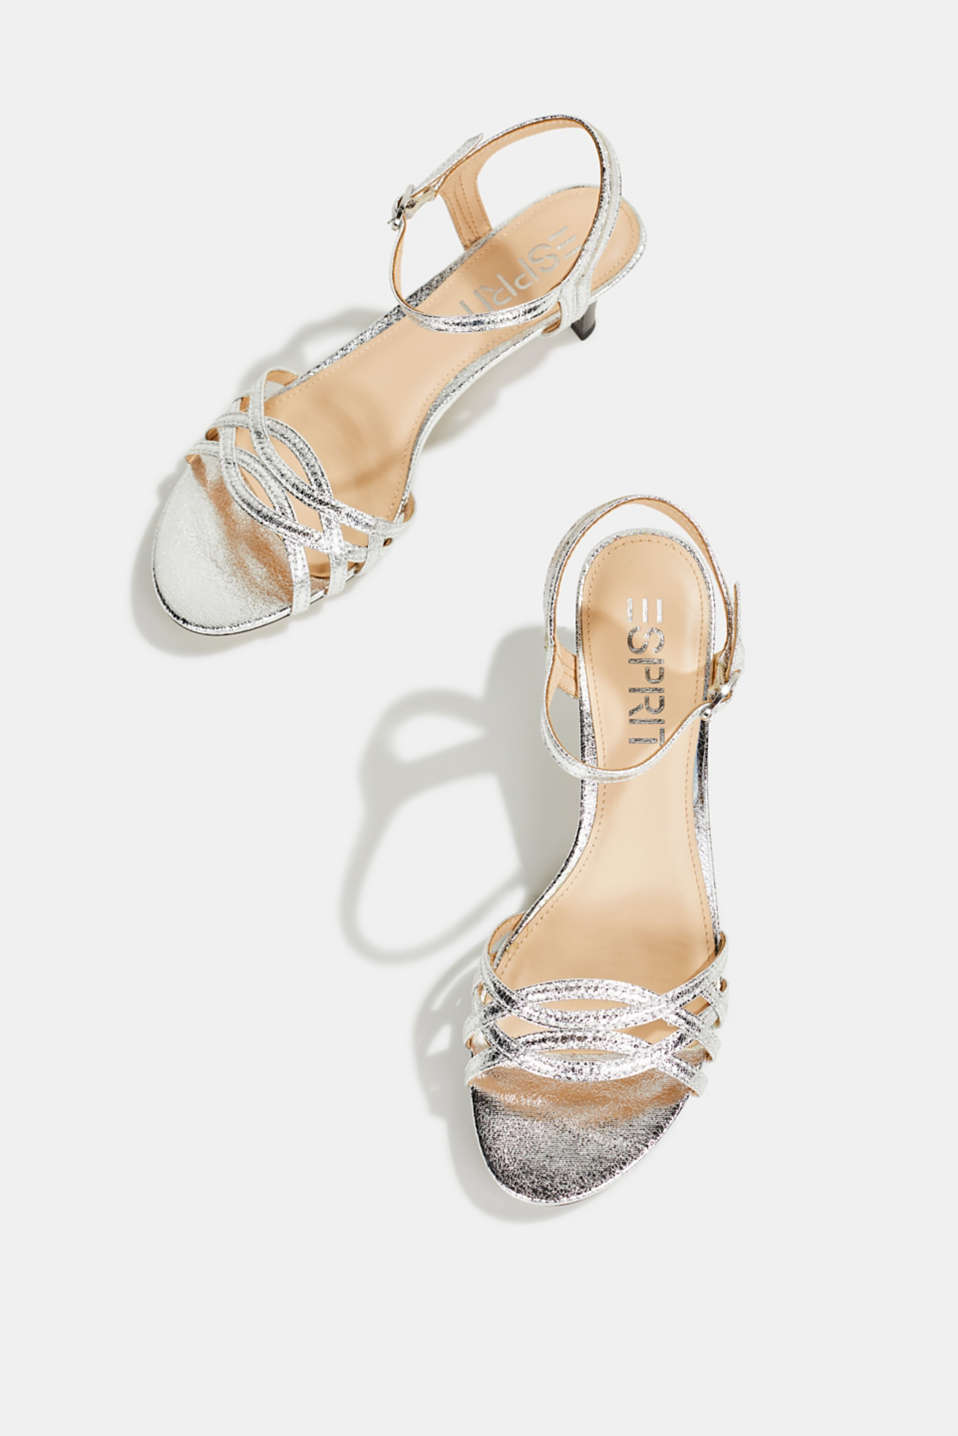 Sandals with straps in a braided look, SILVER, detail image number 1